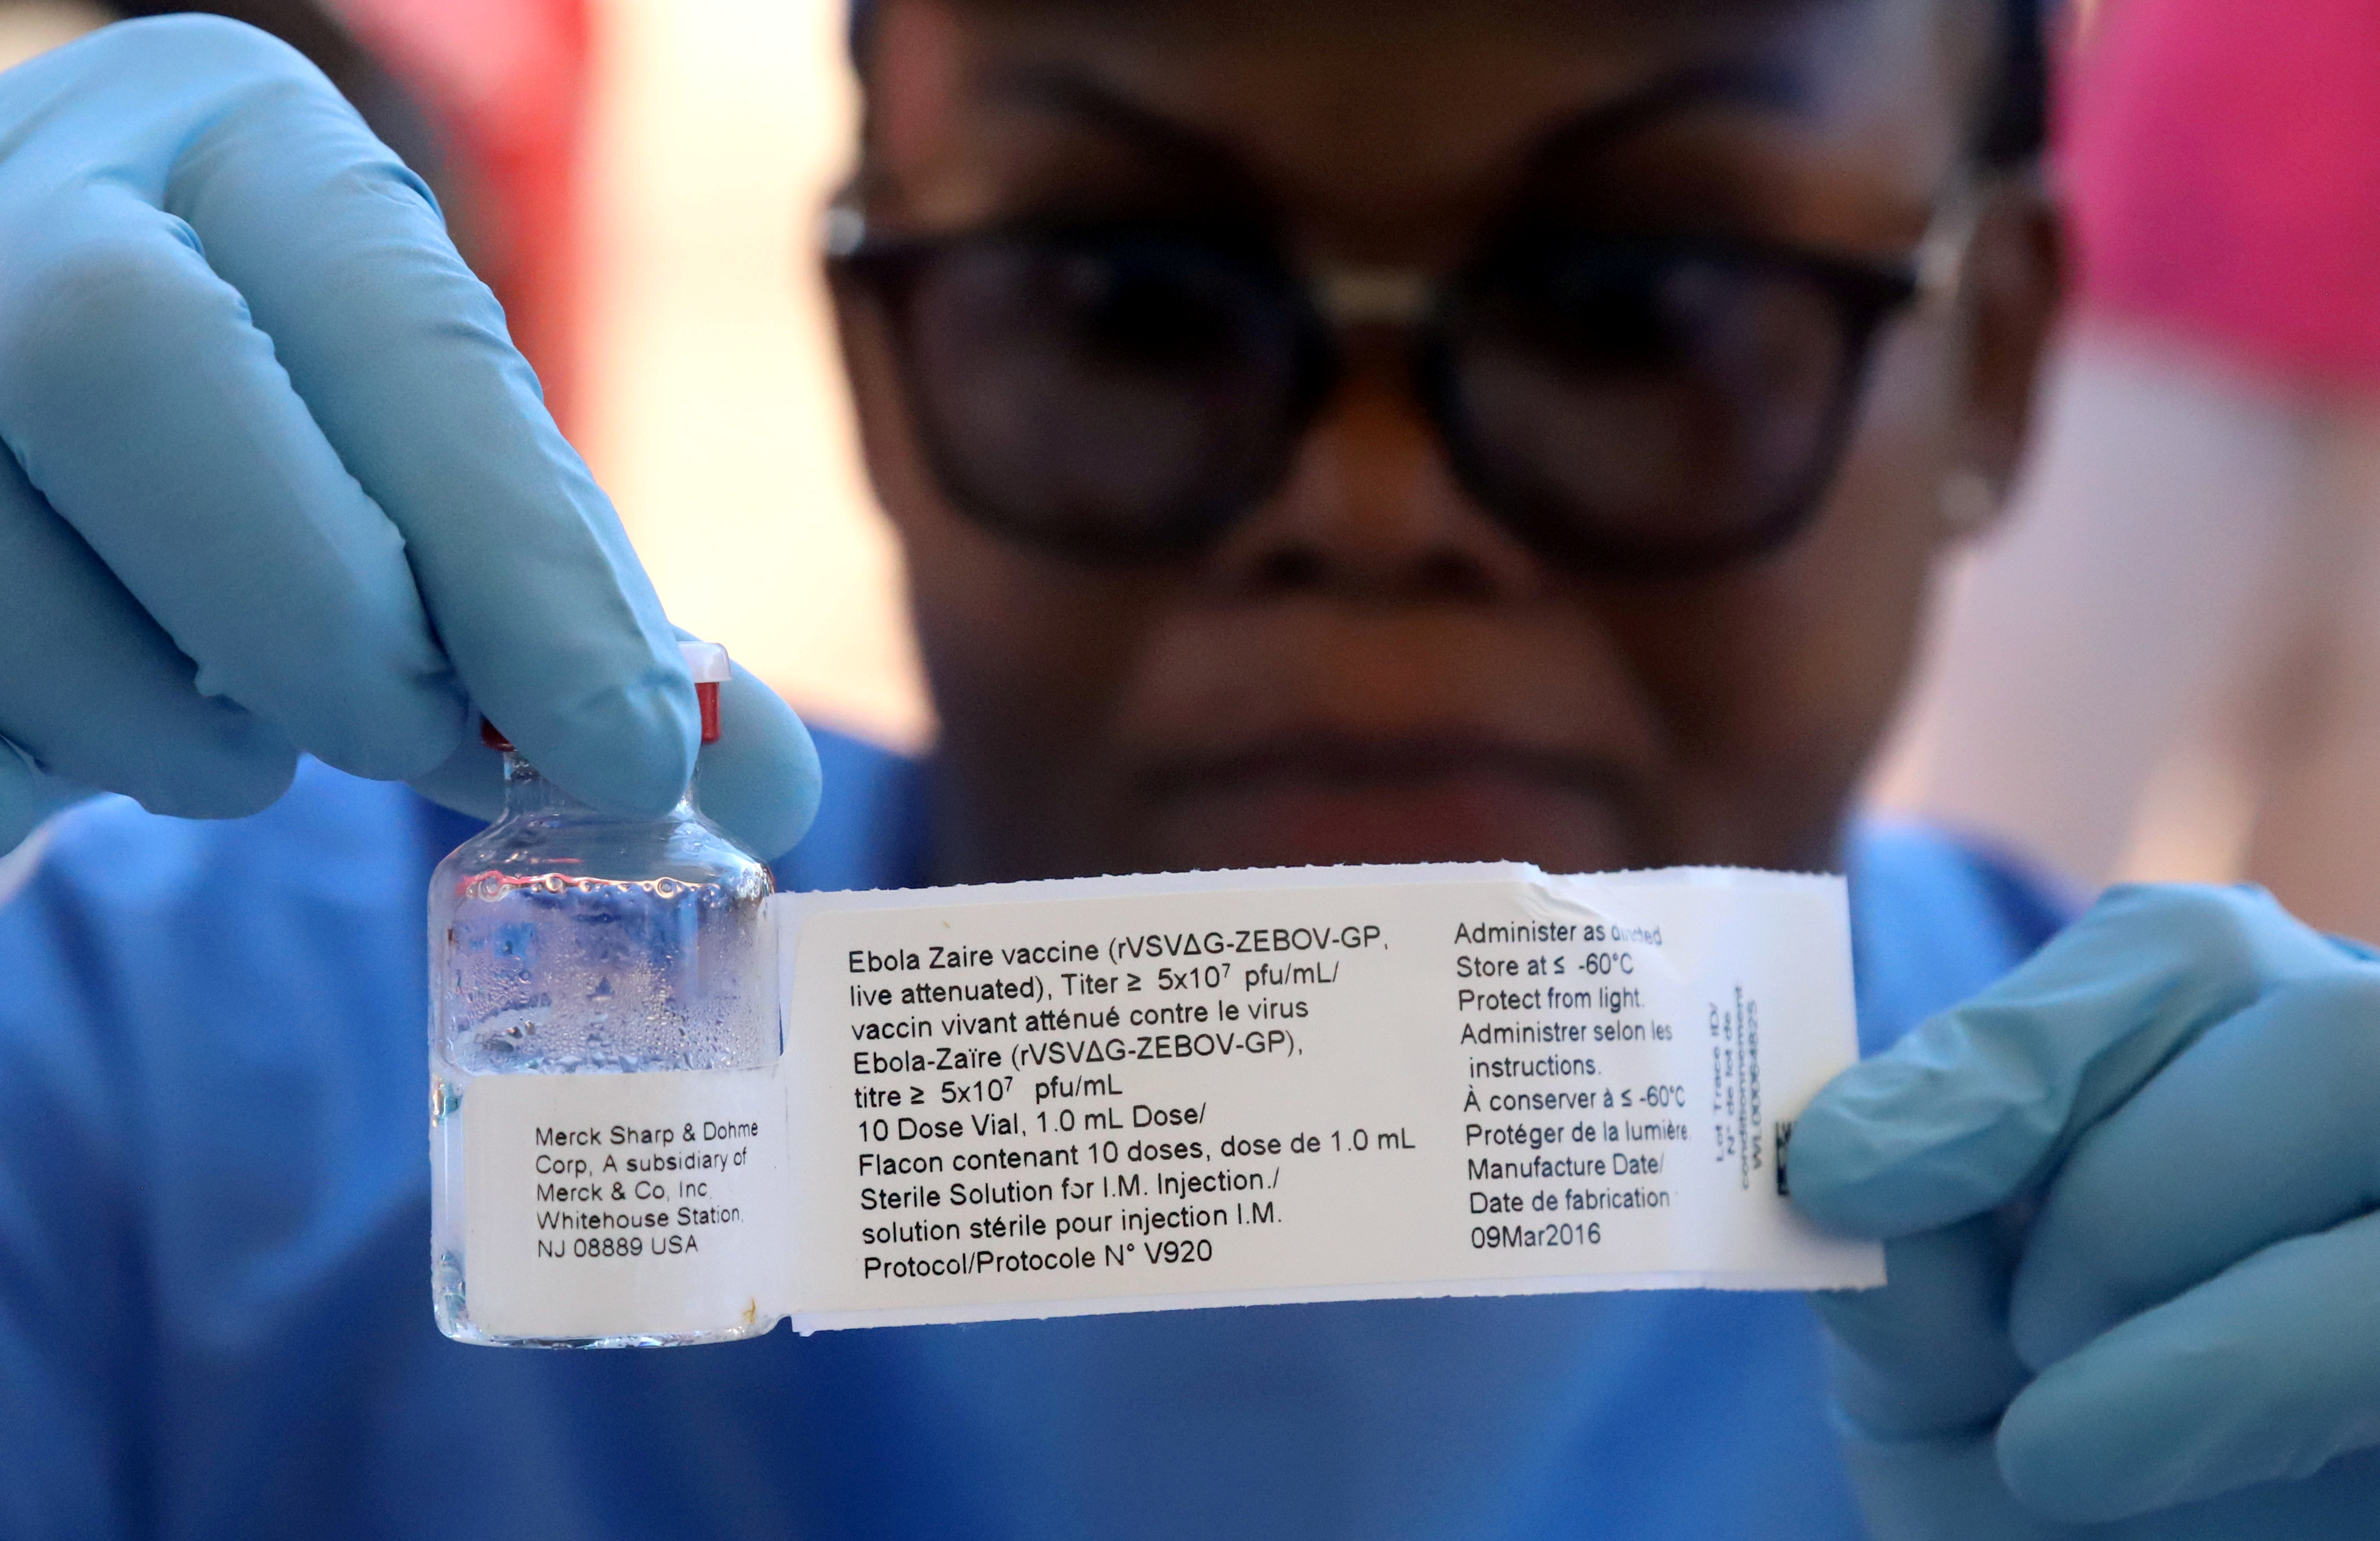 A World Health Organization (WHO) worker prepares to administer a vaccination during an outbreak of Ebola in the port city of Mbandaka, Democratic Republic of Congo, on May 21, 2018.